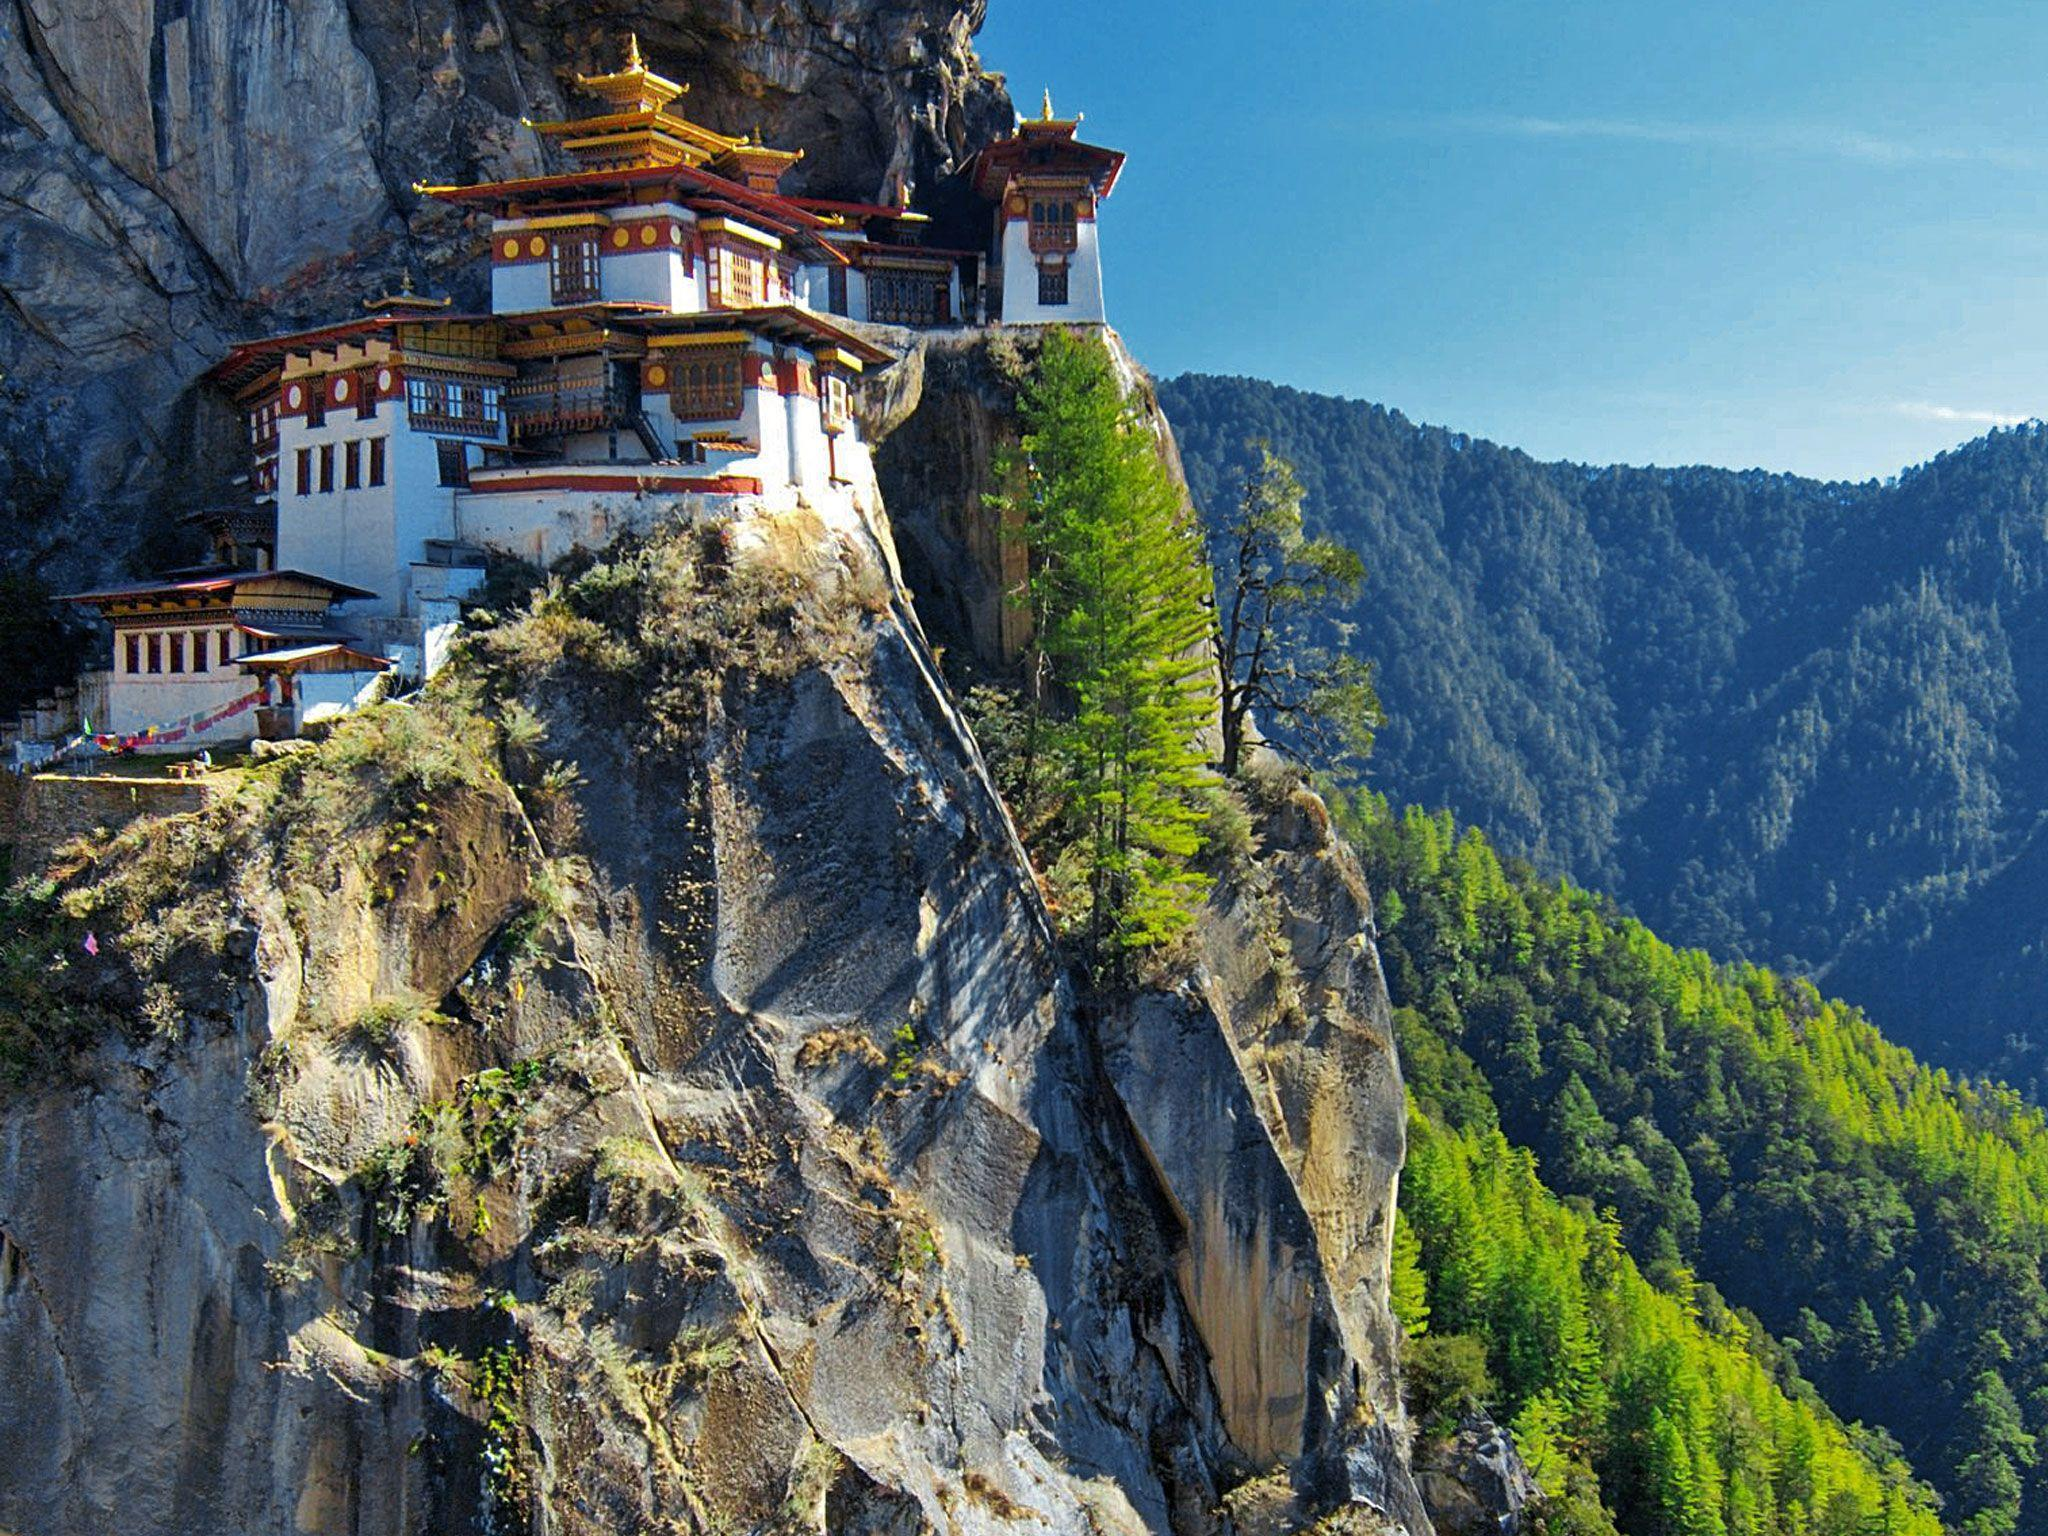 Bhutan Wallpaper for PC | Full HD Pictures